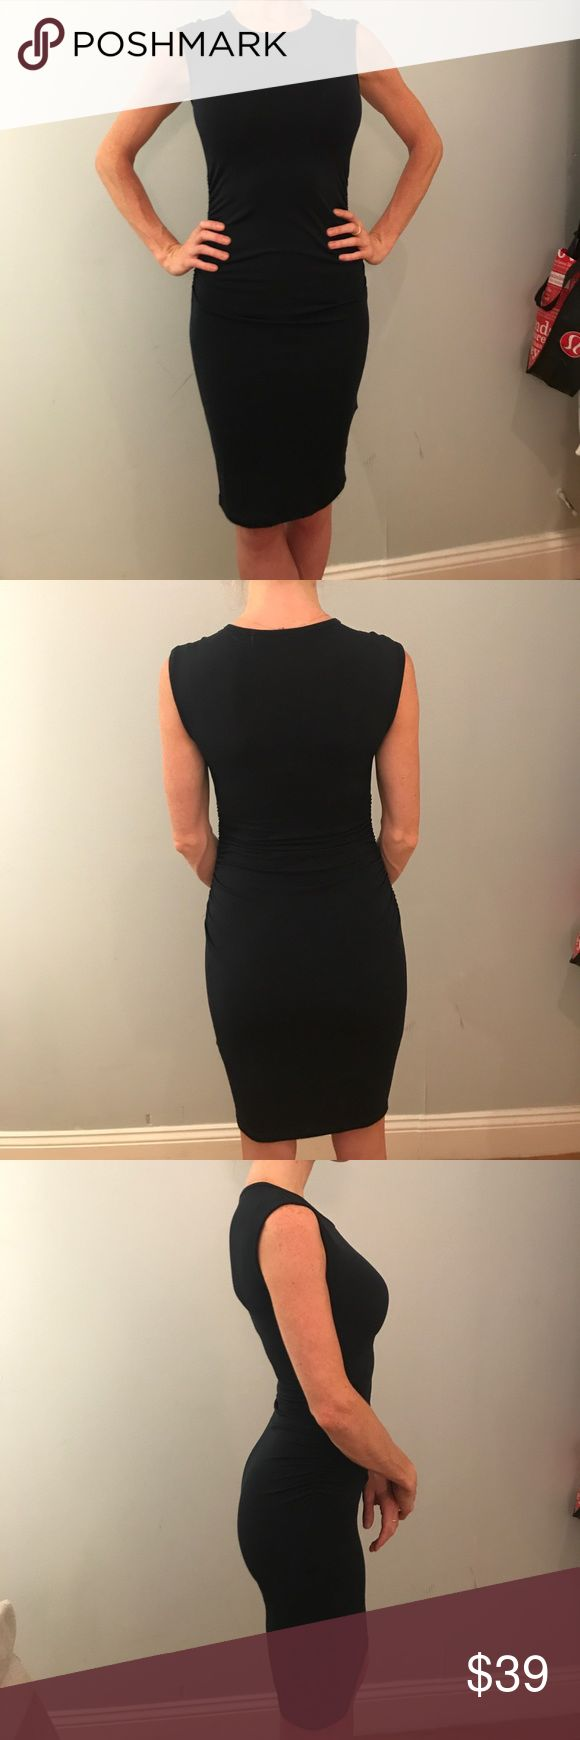 Banana Republic (Navy Blue) Bandage Dress This bod con silhouette hugging dress is perfect to show off all your curves. Sleeveless, 95% polyester, 5% spandex, machine washable, navy blue...XXS Petite for my short friends out there:) Banana Republic Dresses